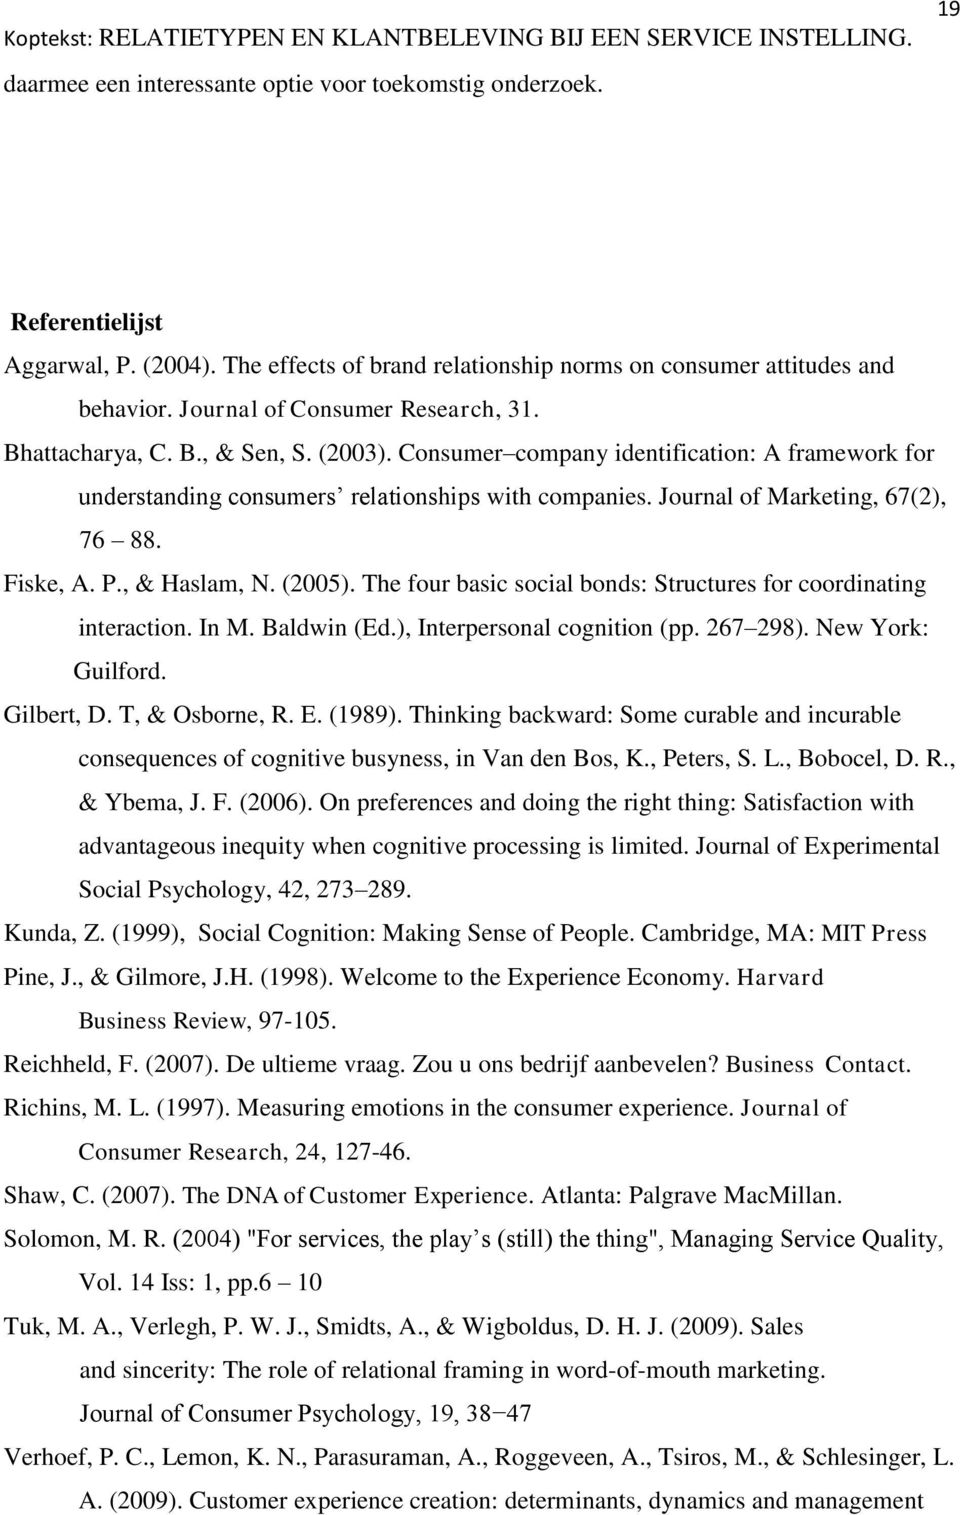 Journal of Marketing, 67(2), 76 88. Fiske, A. P., & Haslam, N. (2005). The four basic social bonds: Structures for coordinating interaction. In M. Baldwin (Ed.), Interpersonal cognition (pp. 267 298).